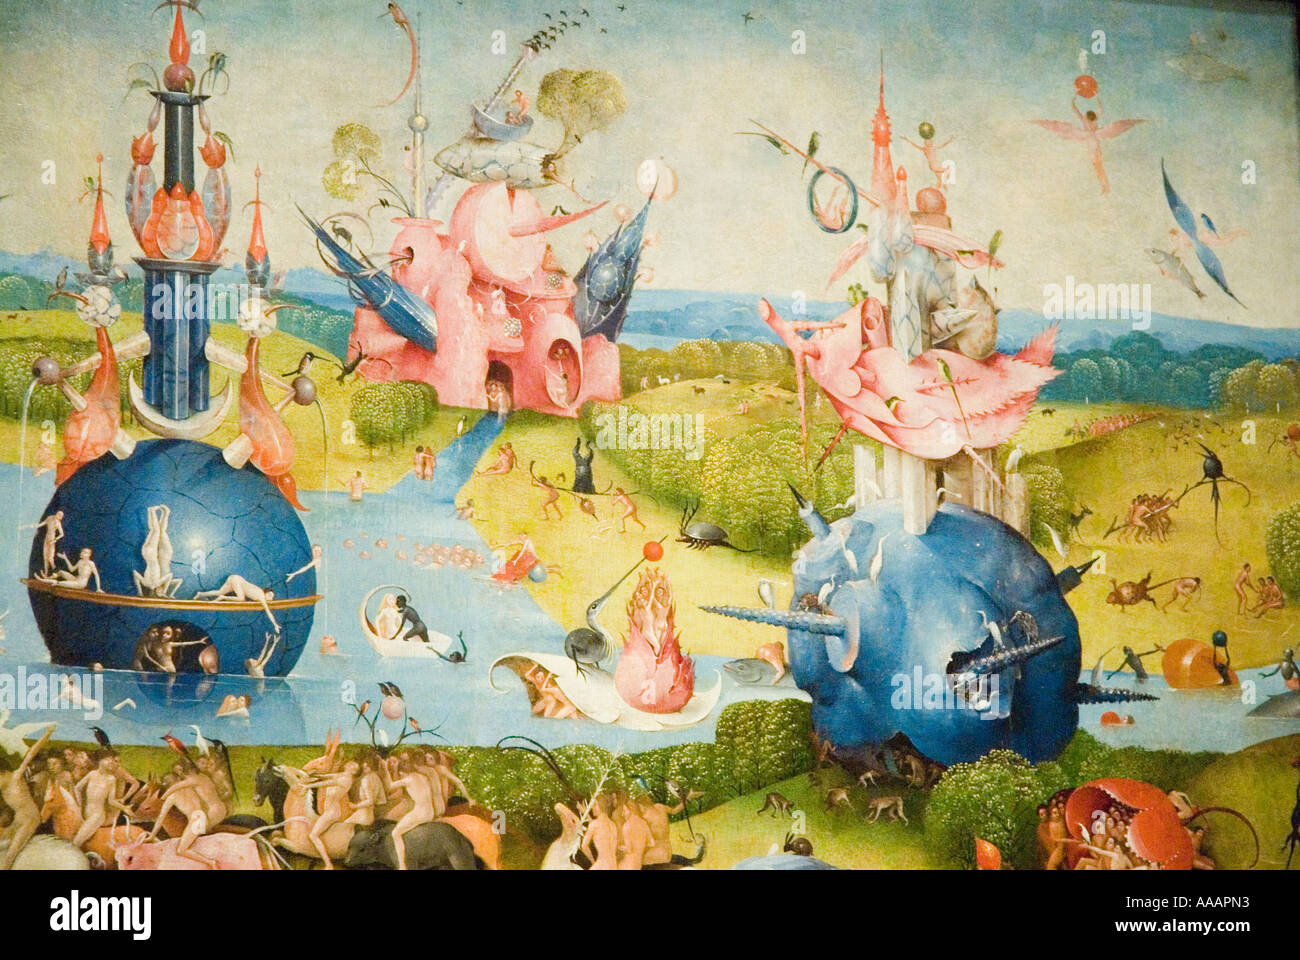 The Garden Of Earthly Delights Painting By Hieronymus Bosch Prado Stock Photo Royalty Free